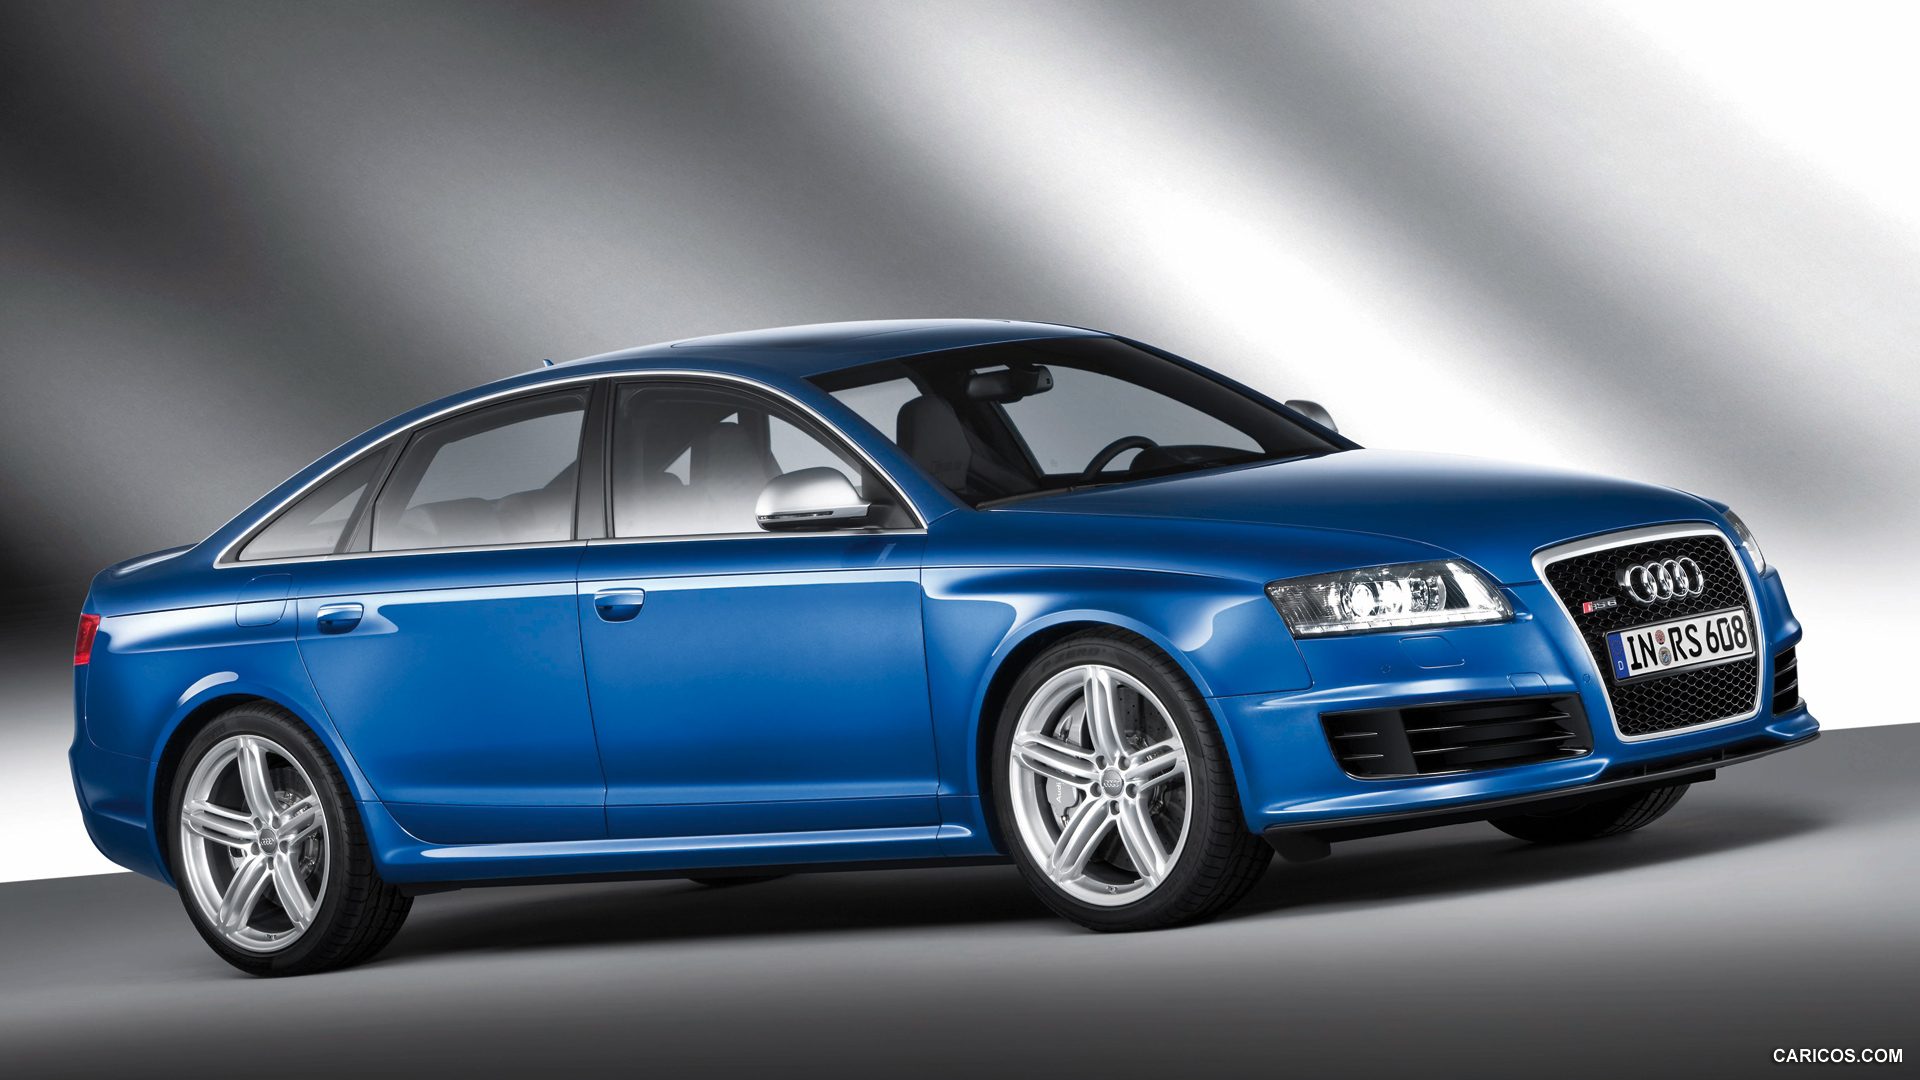 2009 Audi RS6 Sedan Blue - Side | HD Wallpaper #7